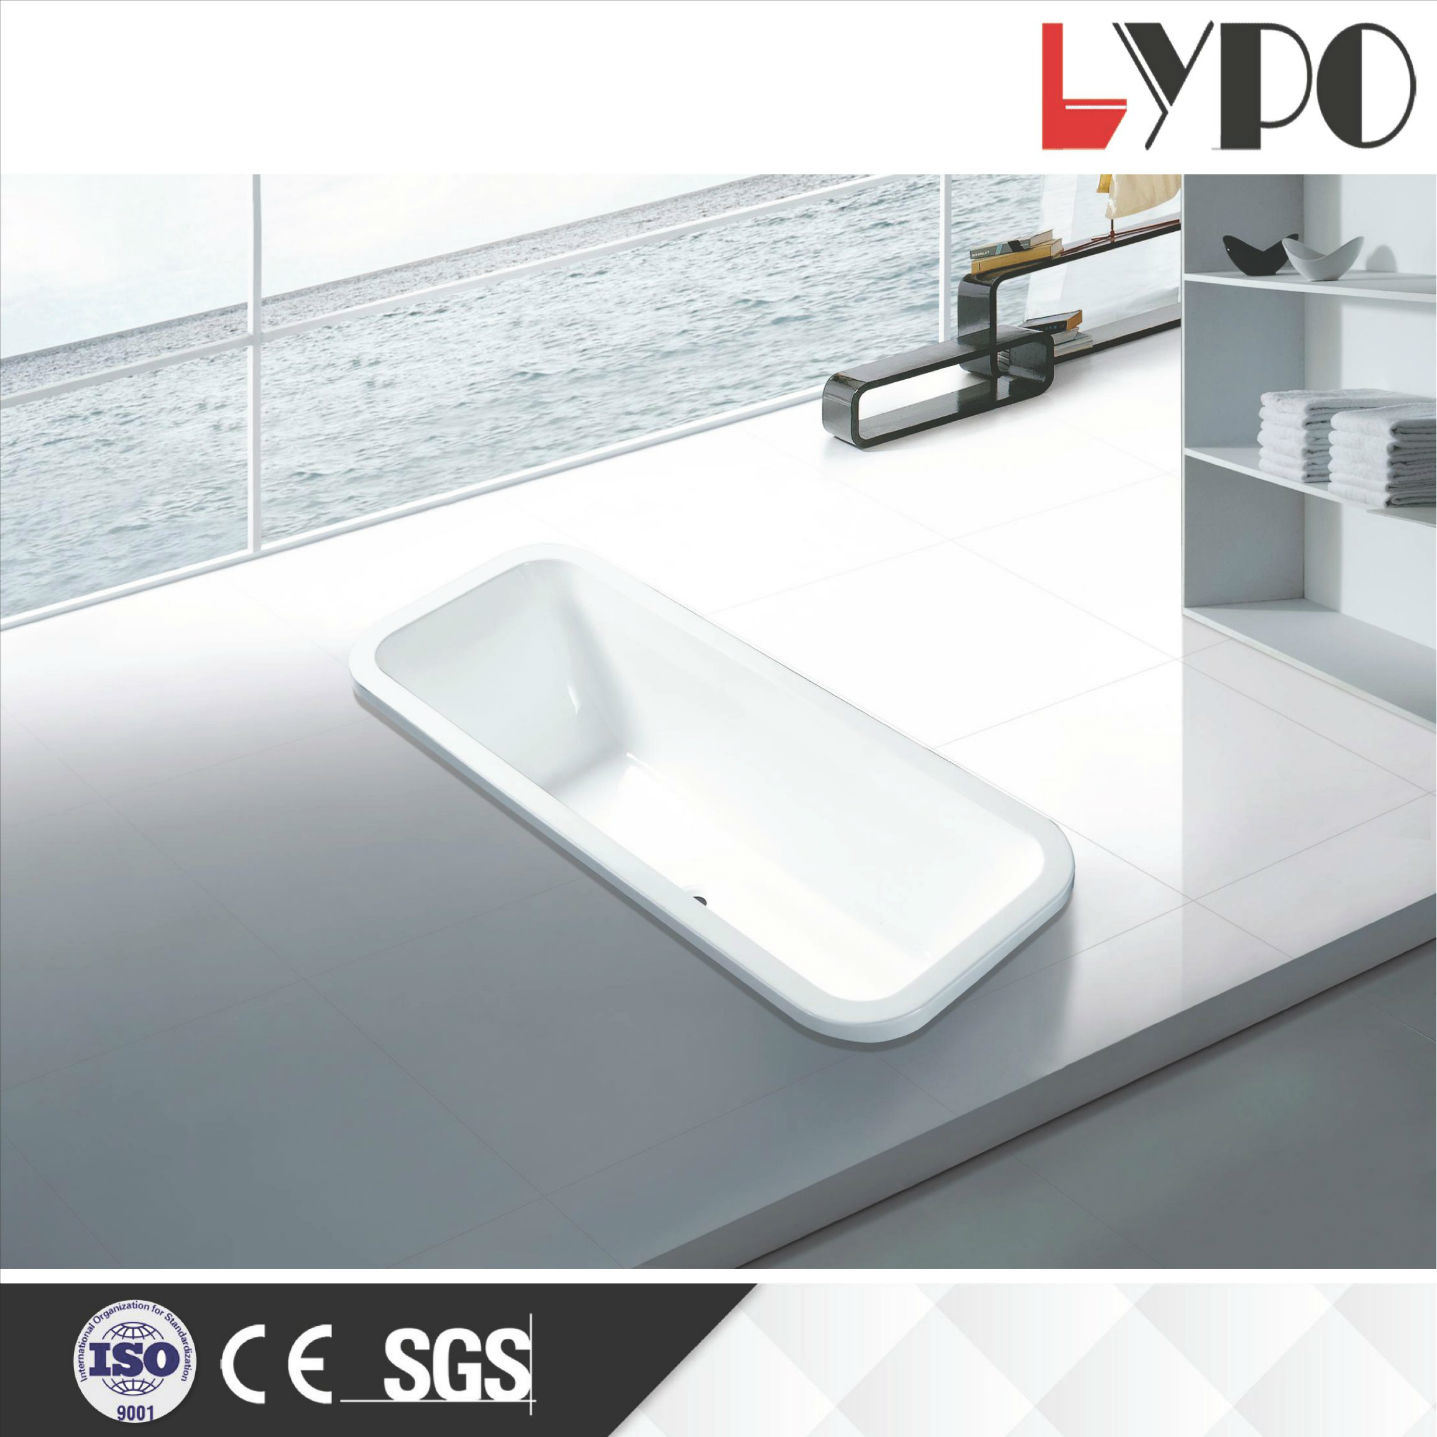 K-1301 Made in China Whirlpool Bathtub, Soaker Tub Made in China ...